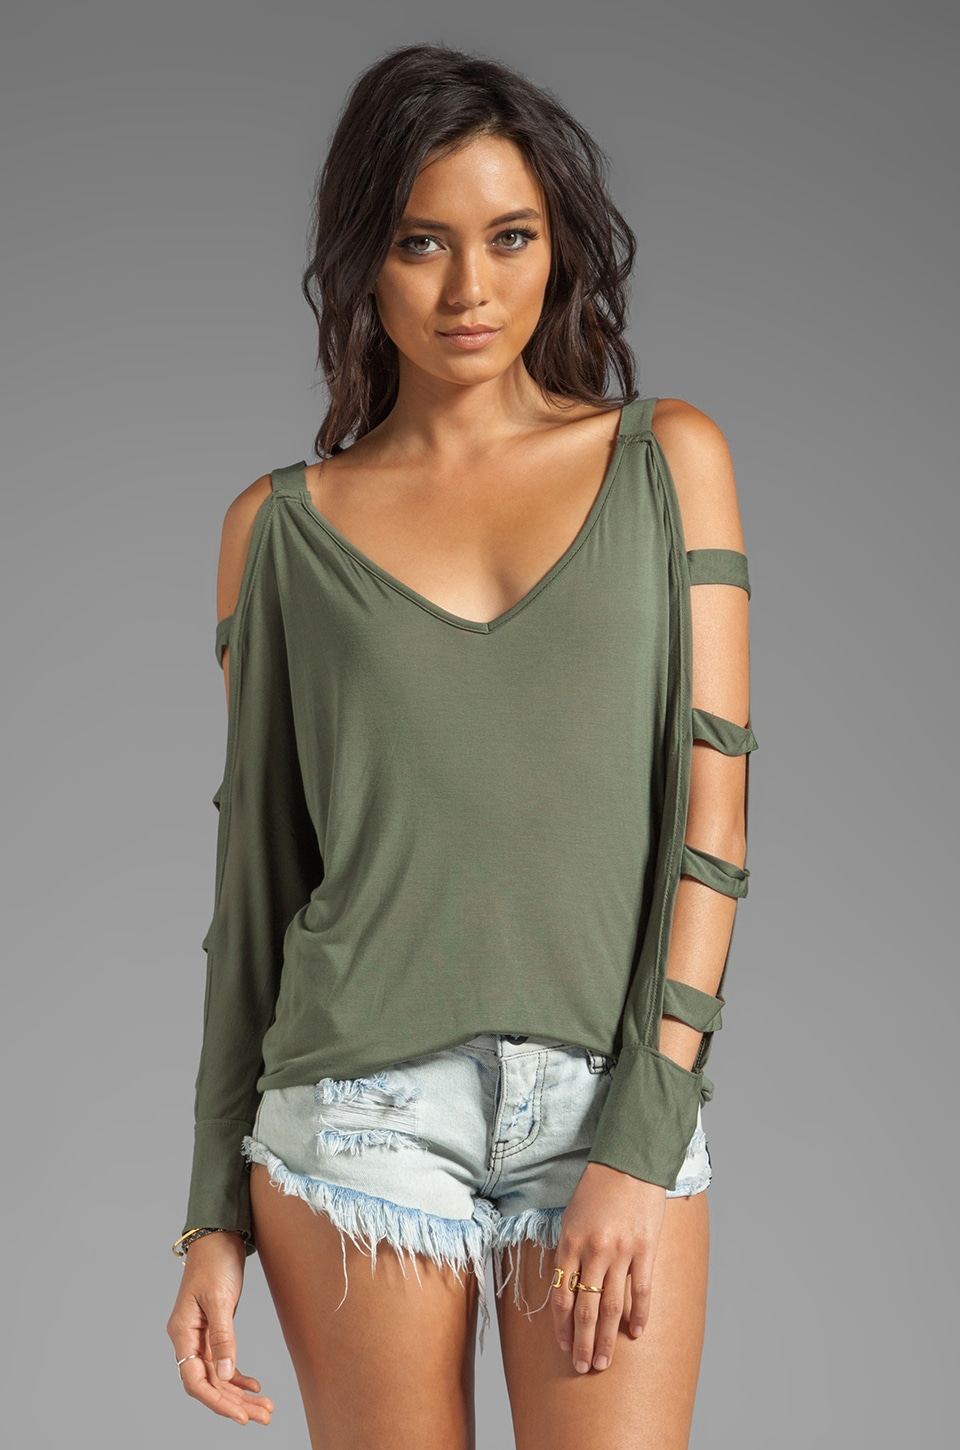 Blue Life Ladder Top in Military Green